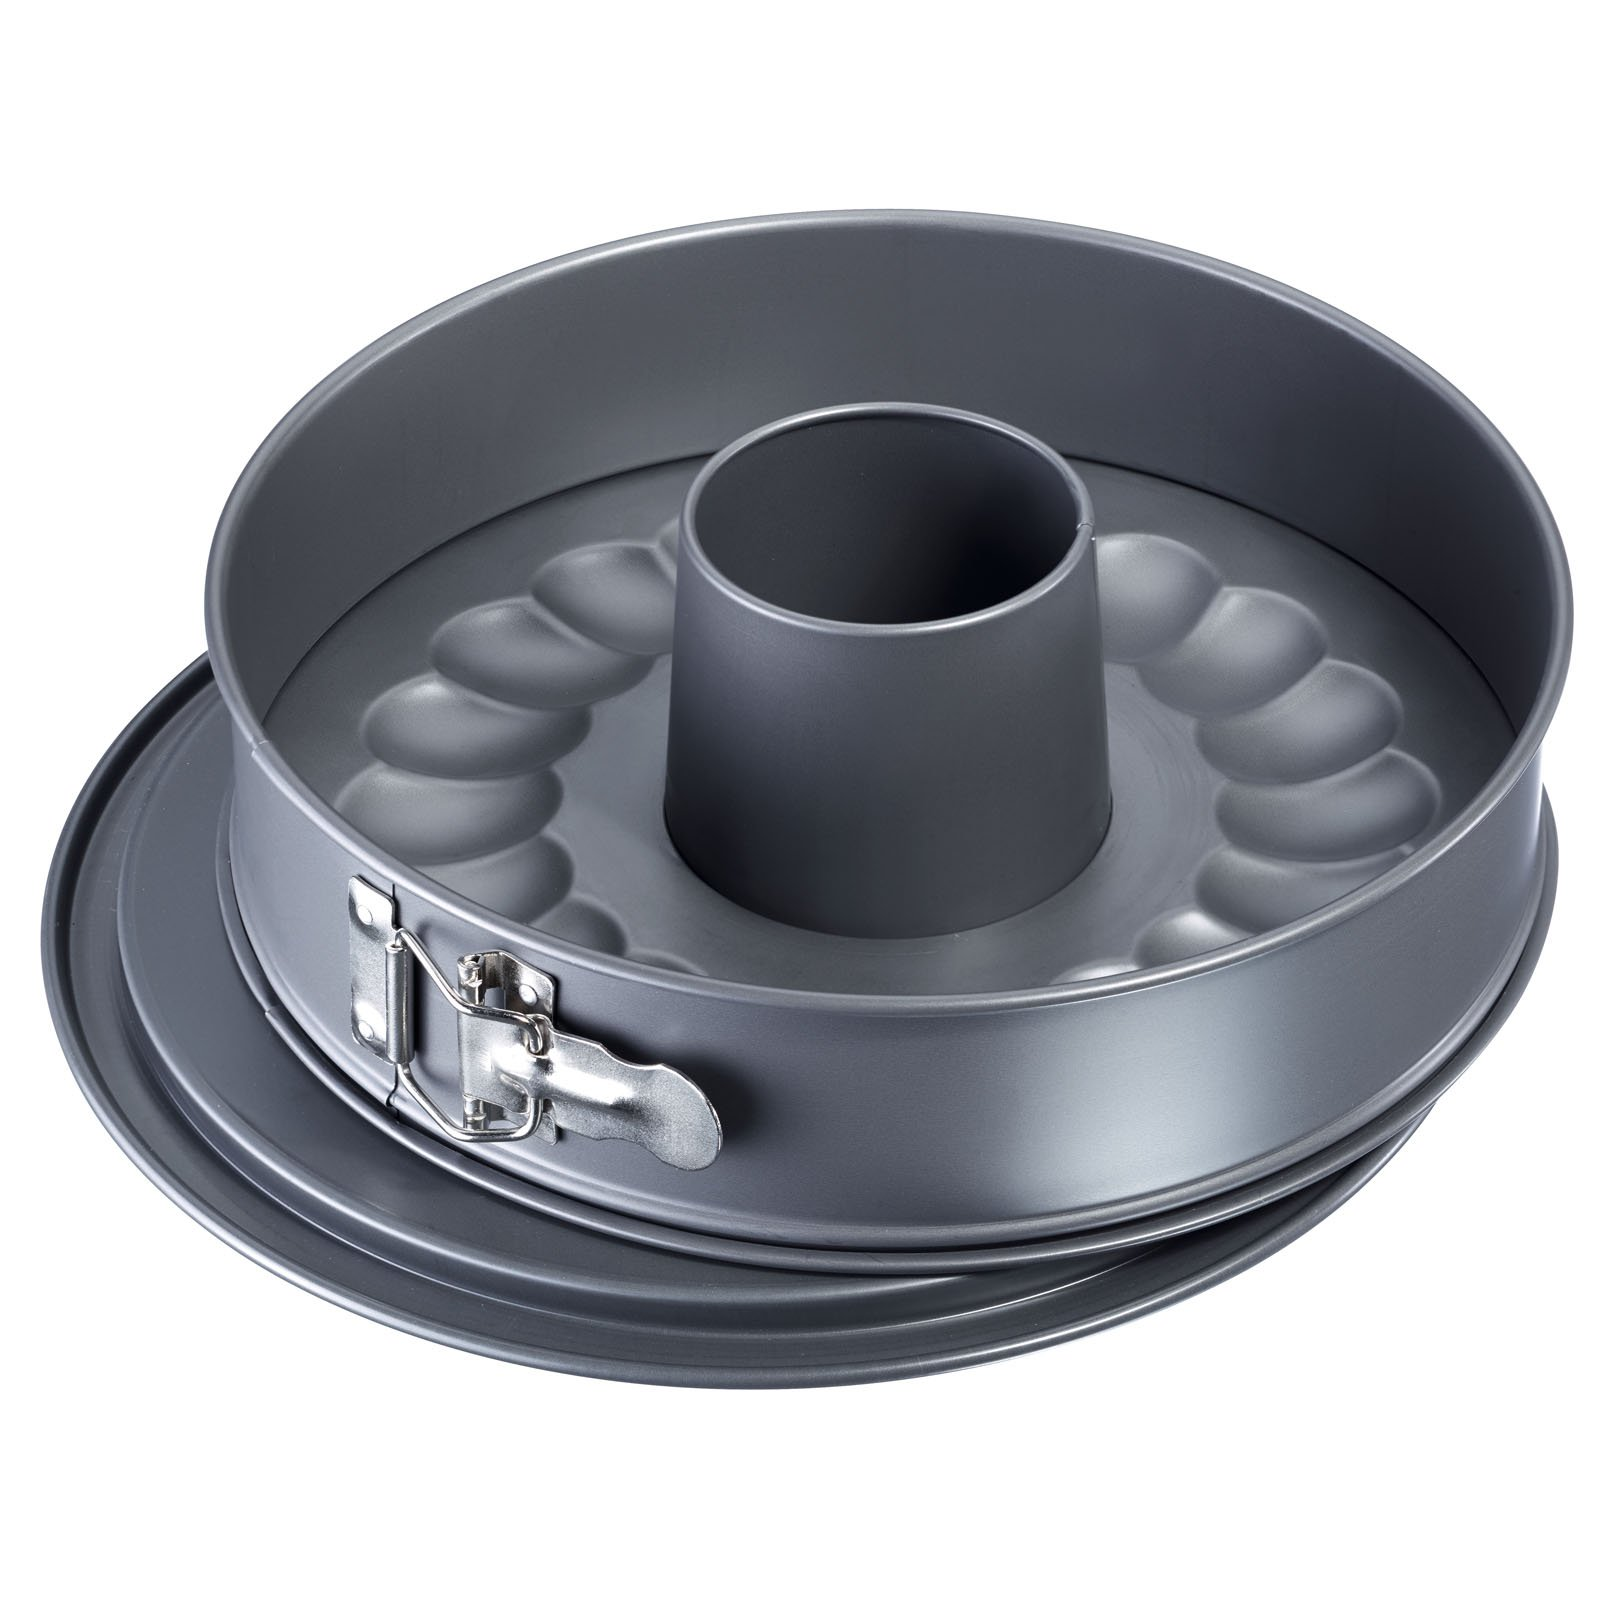 Westmark 33692260 Nonstick Springform Pan Set with Leak Proof 2 Bases, 11'', Gray by Westmark (Image #1)